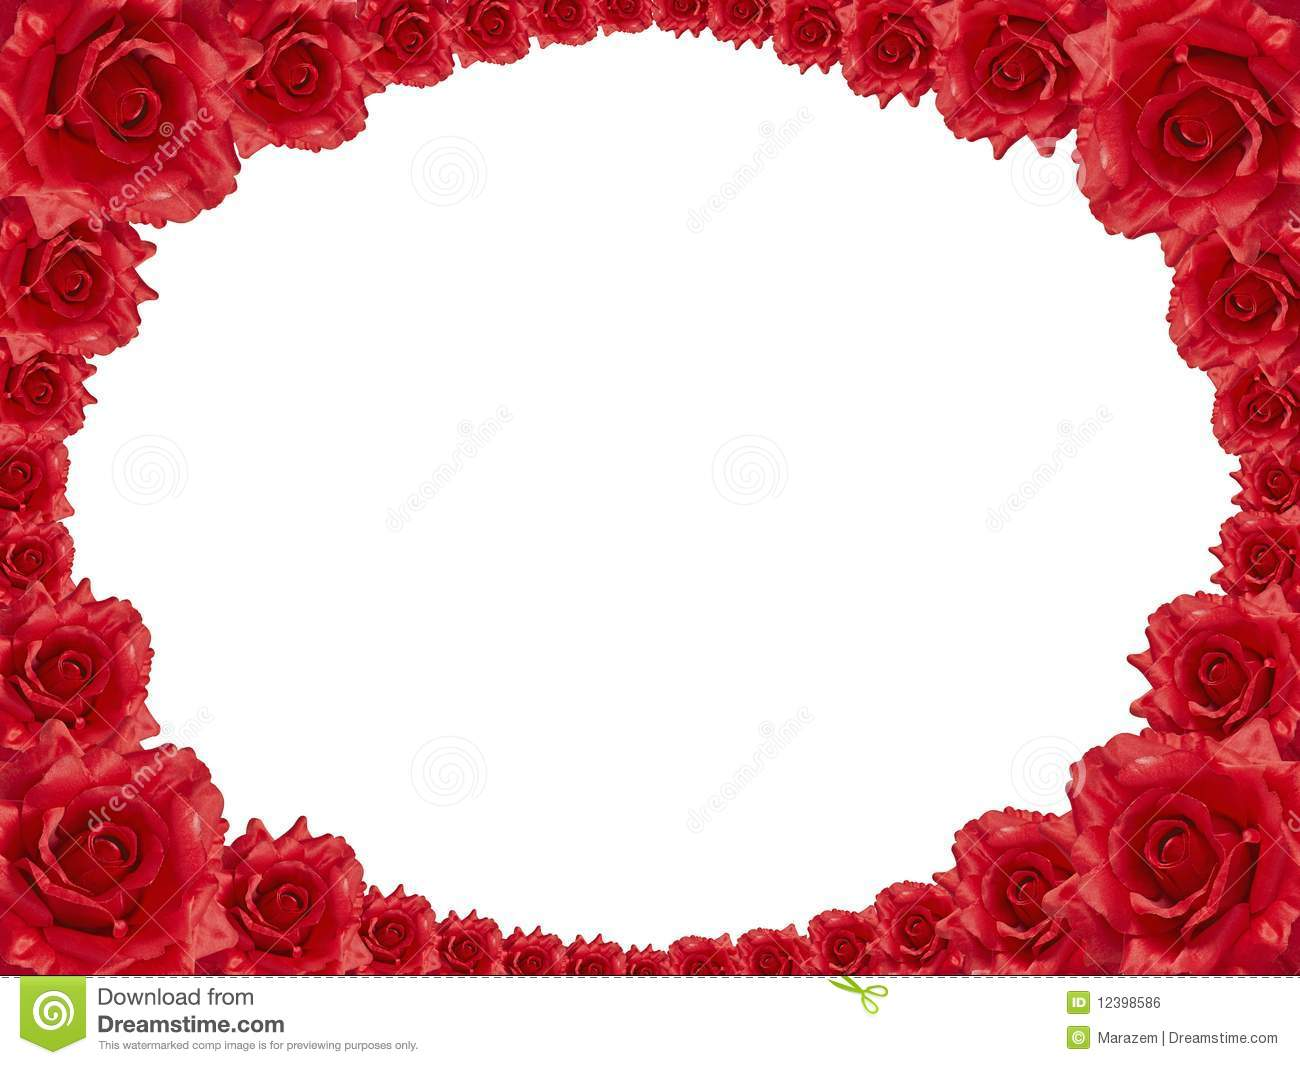 Red Rose Frame Royalty Free Stock Image  Image: 12398586